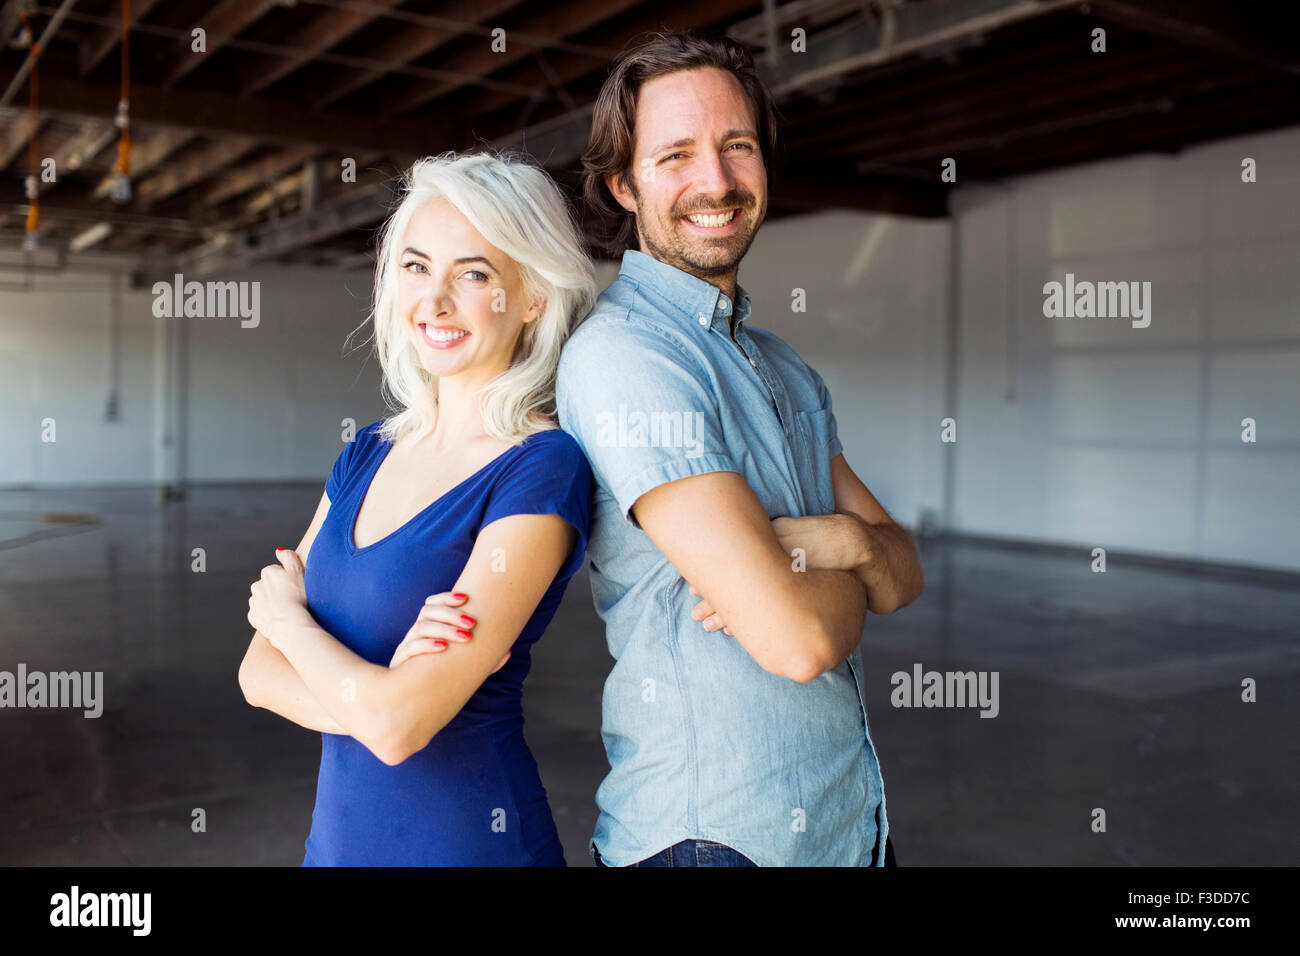 Woman and man standing in warehouse - Stock Image